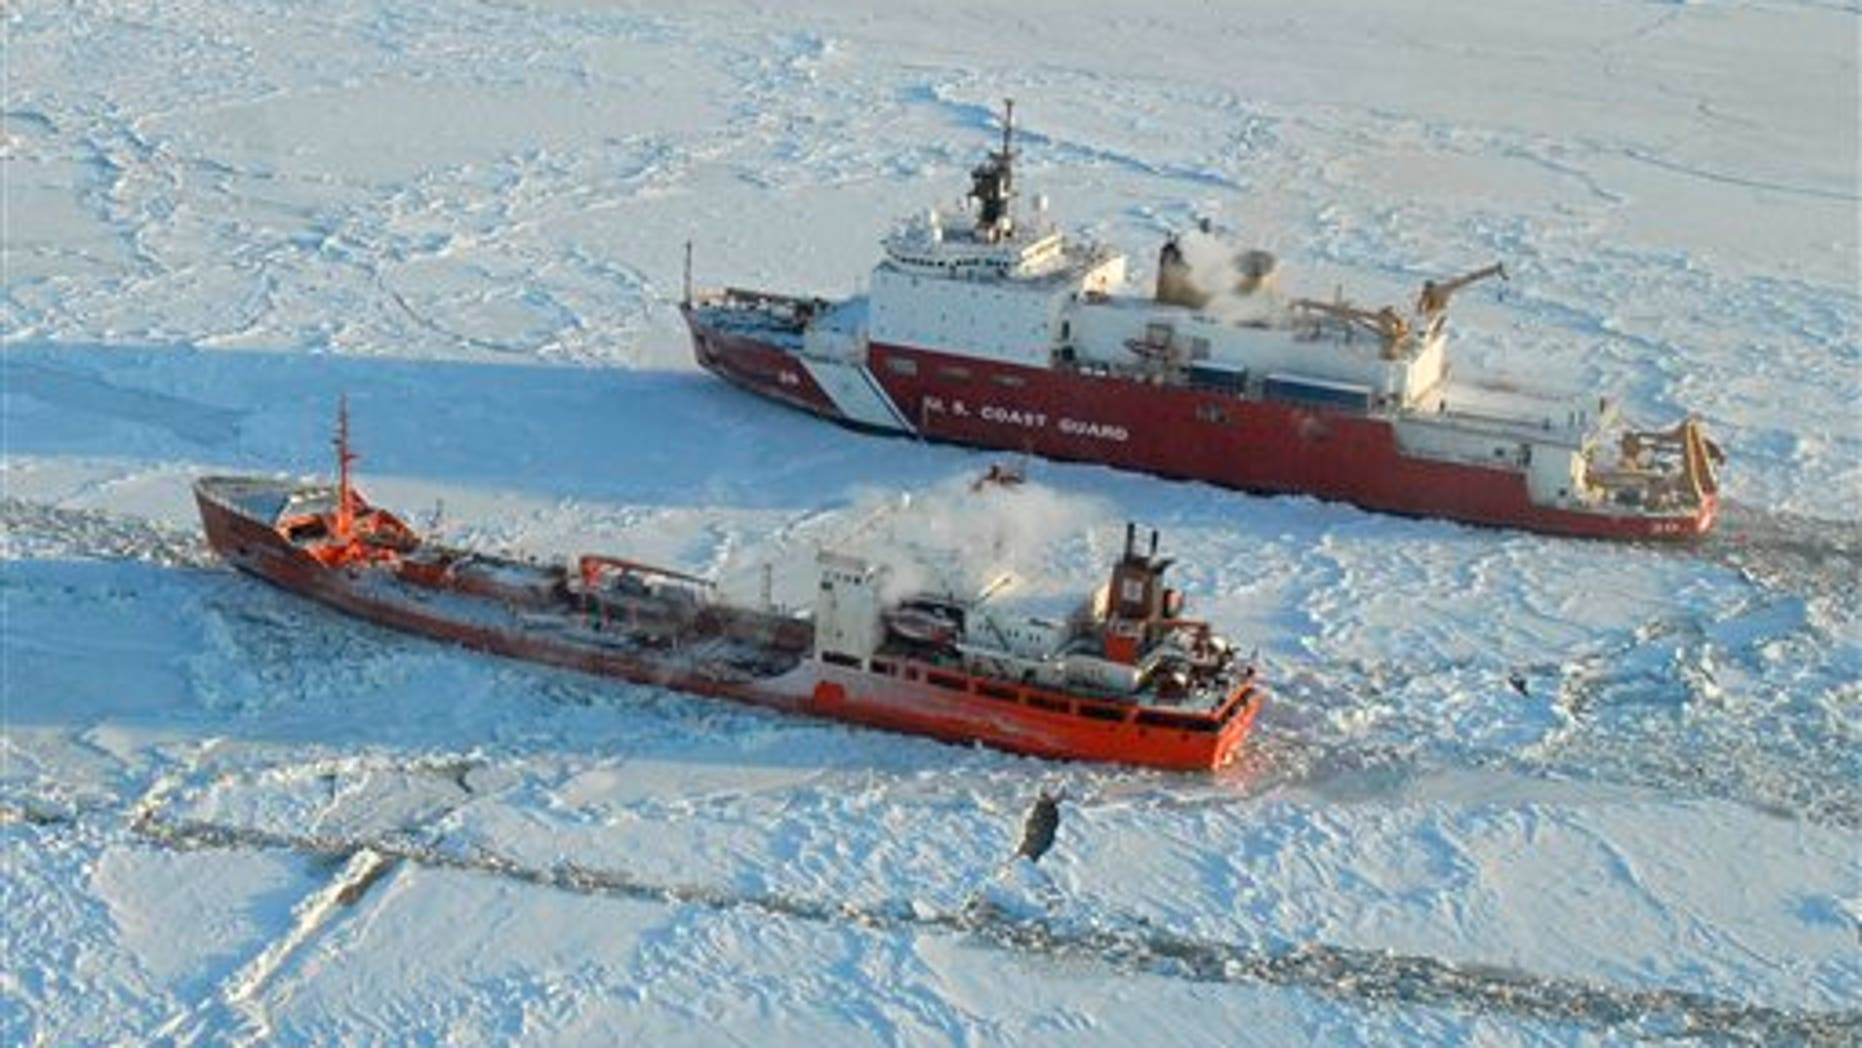 Jan. 6, 2012: The Coast Guard Cutter Healy breaks ice around the Russian-flagged tanker Renda 250 miles south of Nome. The Healy is the Coast Guard's only currently operating polar icebreaker. The vessels are transiting through ice up to five-feet thick in this area. The 370-foot tanker Renda will have to go through more than 300 miles of sea ice to get to Nome, a city of about 3,500 people on the western Alaska coastline that did not get its last pre-winter fuel delivery because of a massive storm.